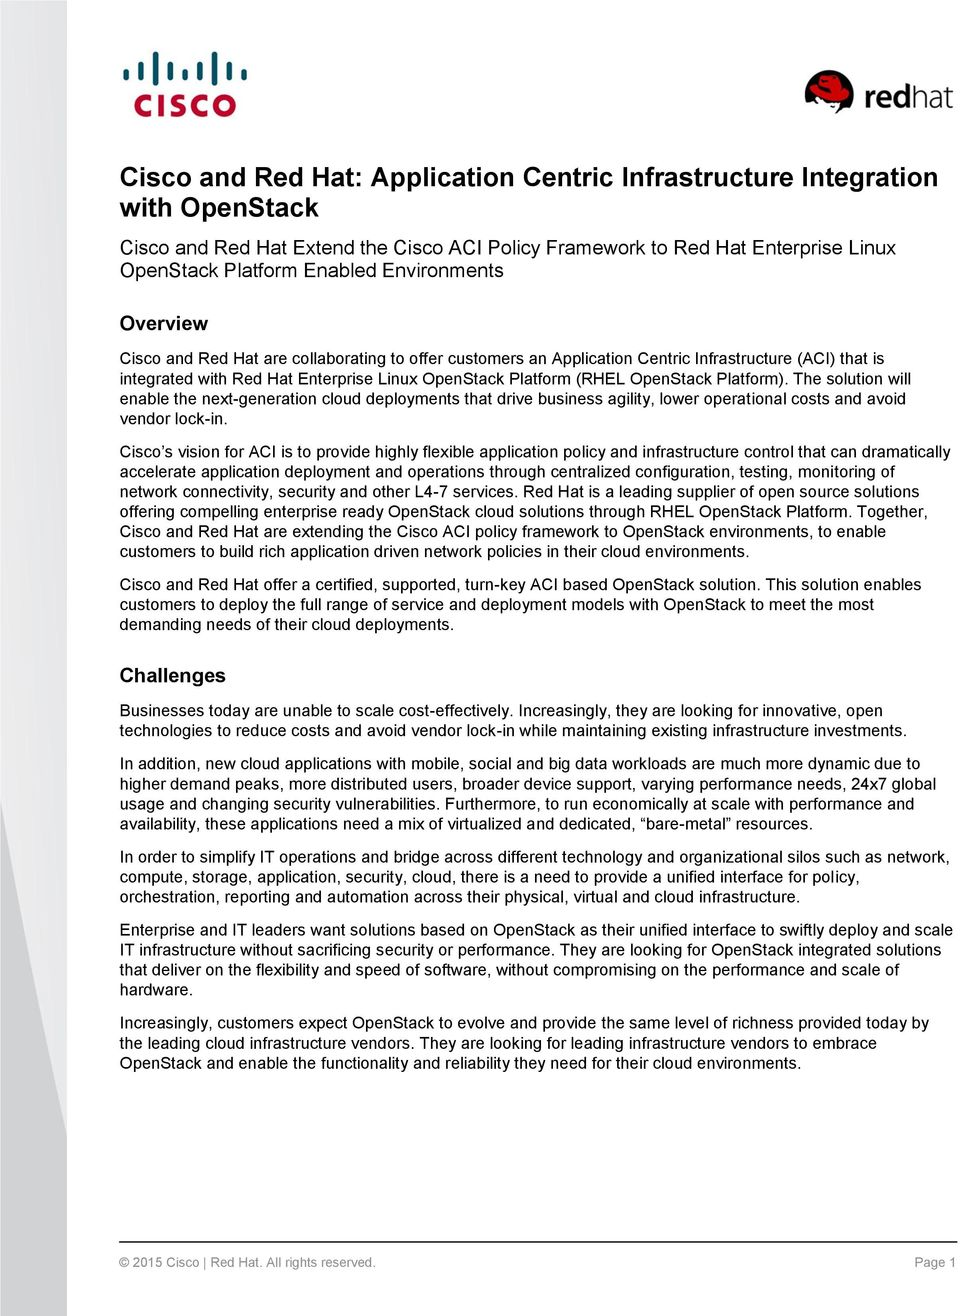 OpenStack Platform). The solution will enable the next-generation cloud deployments that drive business agility, lower operational costs and avoid vendor lock-in.